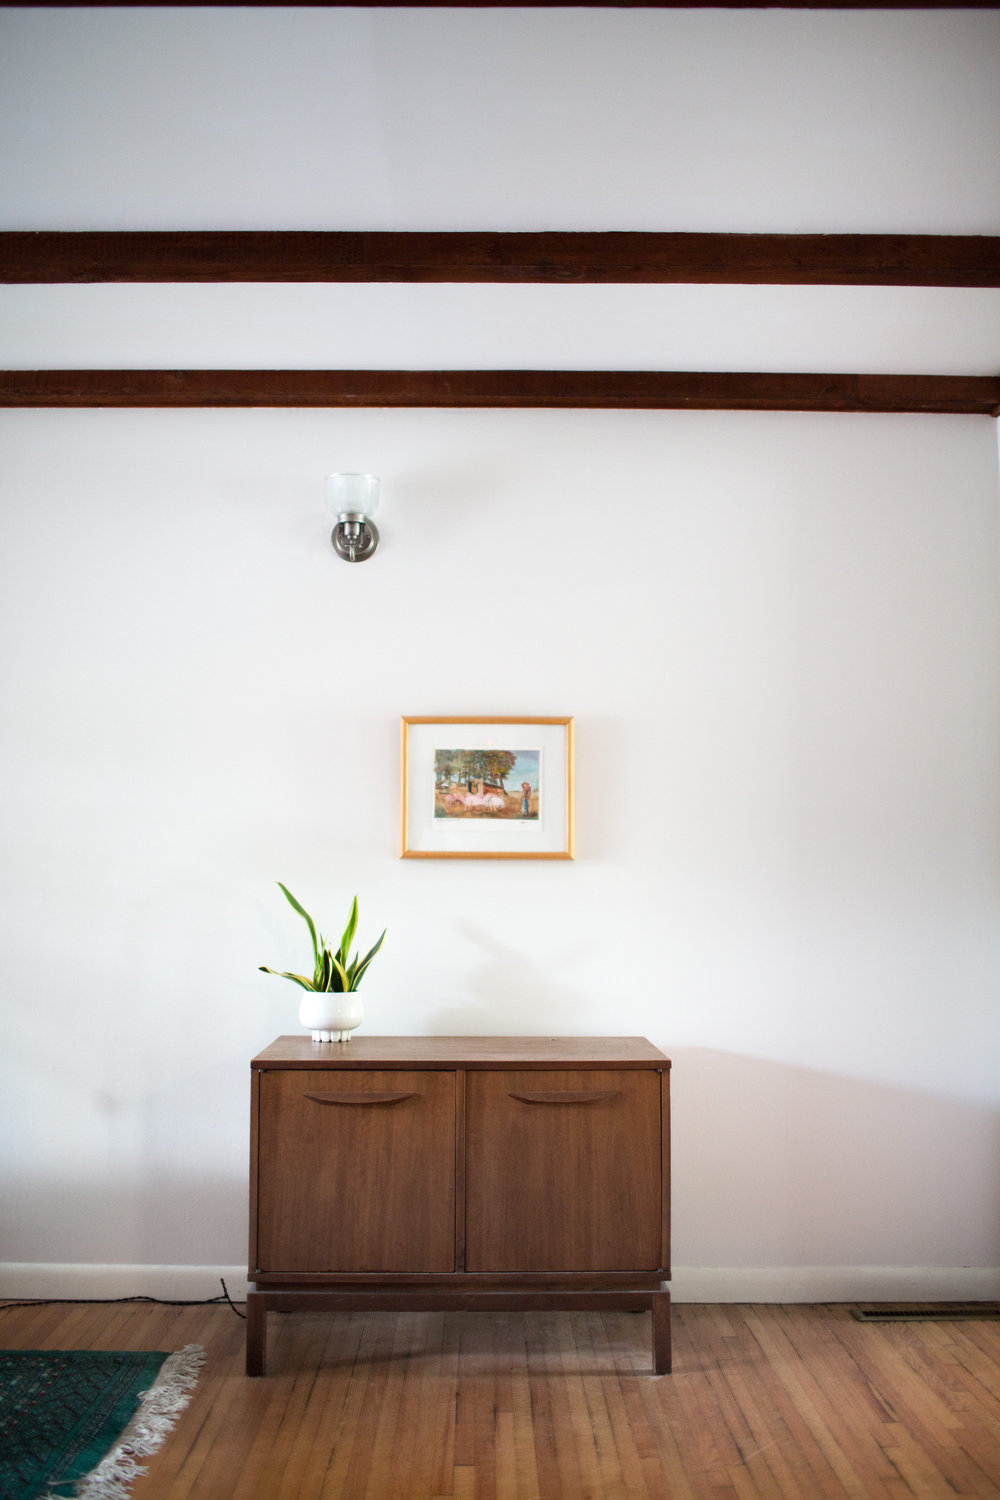 This console (which stands opposite the large built-in) brings a sense of balance to the room by bringing the dark wood to this side of the room. Also, notice the light wood frame hung right above and the dark wood beam at the top. Wood, wood and more wood! Photo Credit: KET Photography